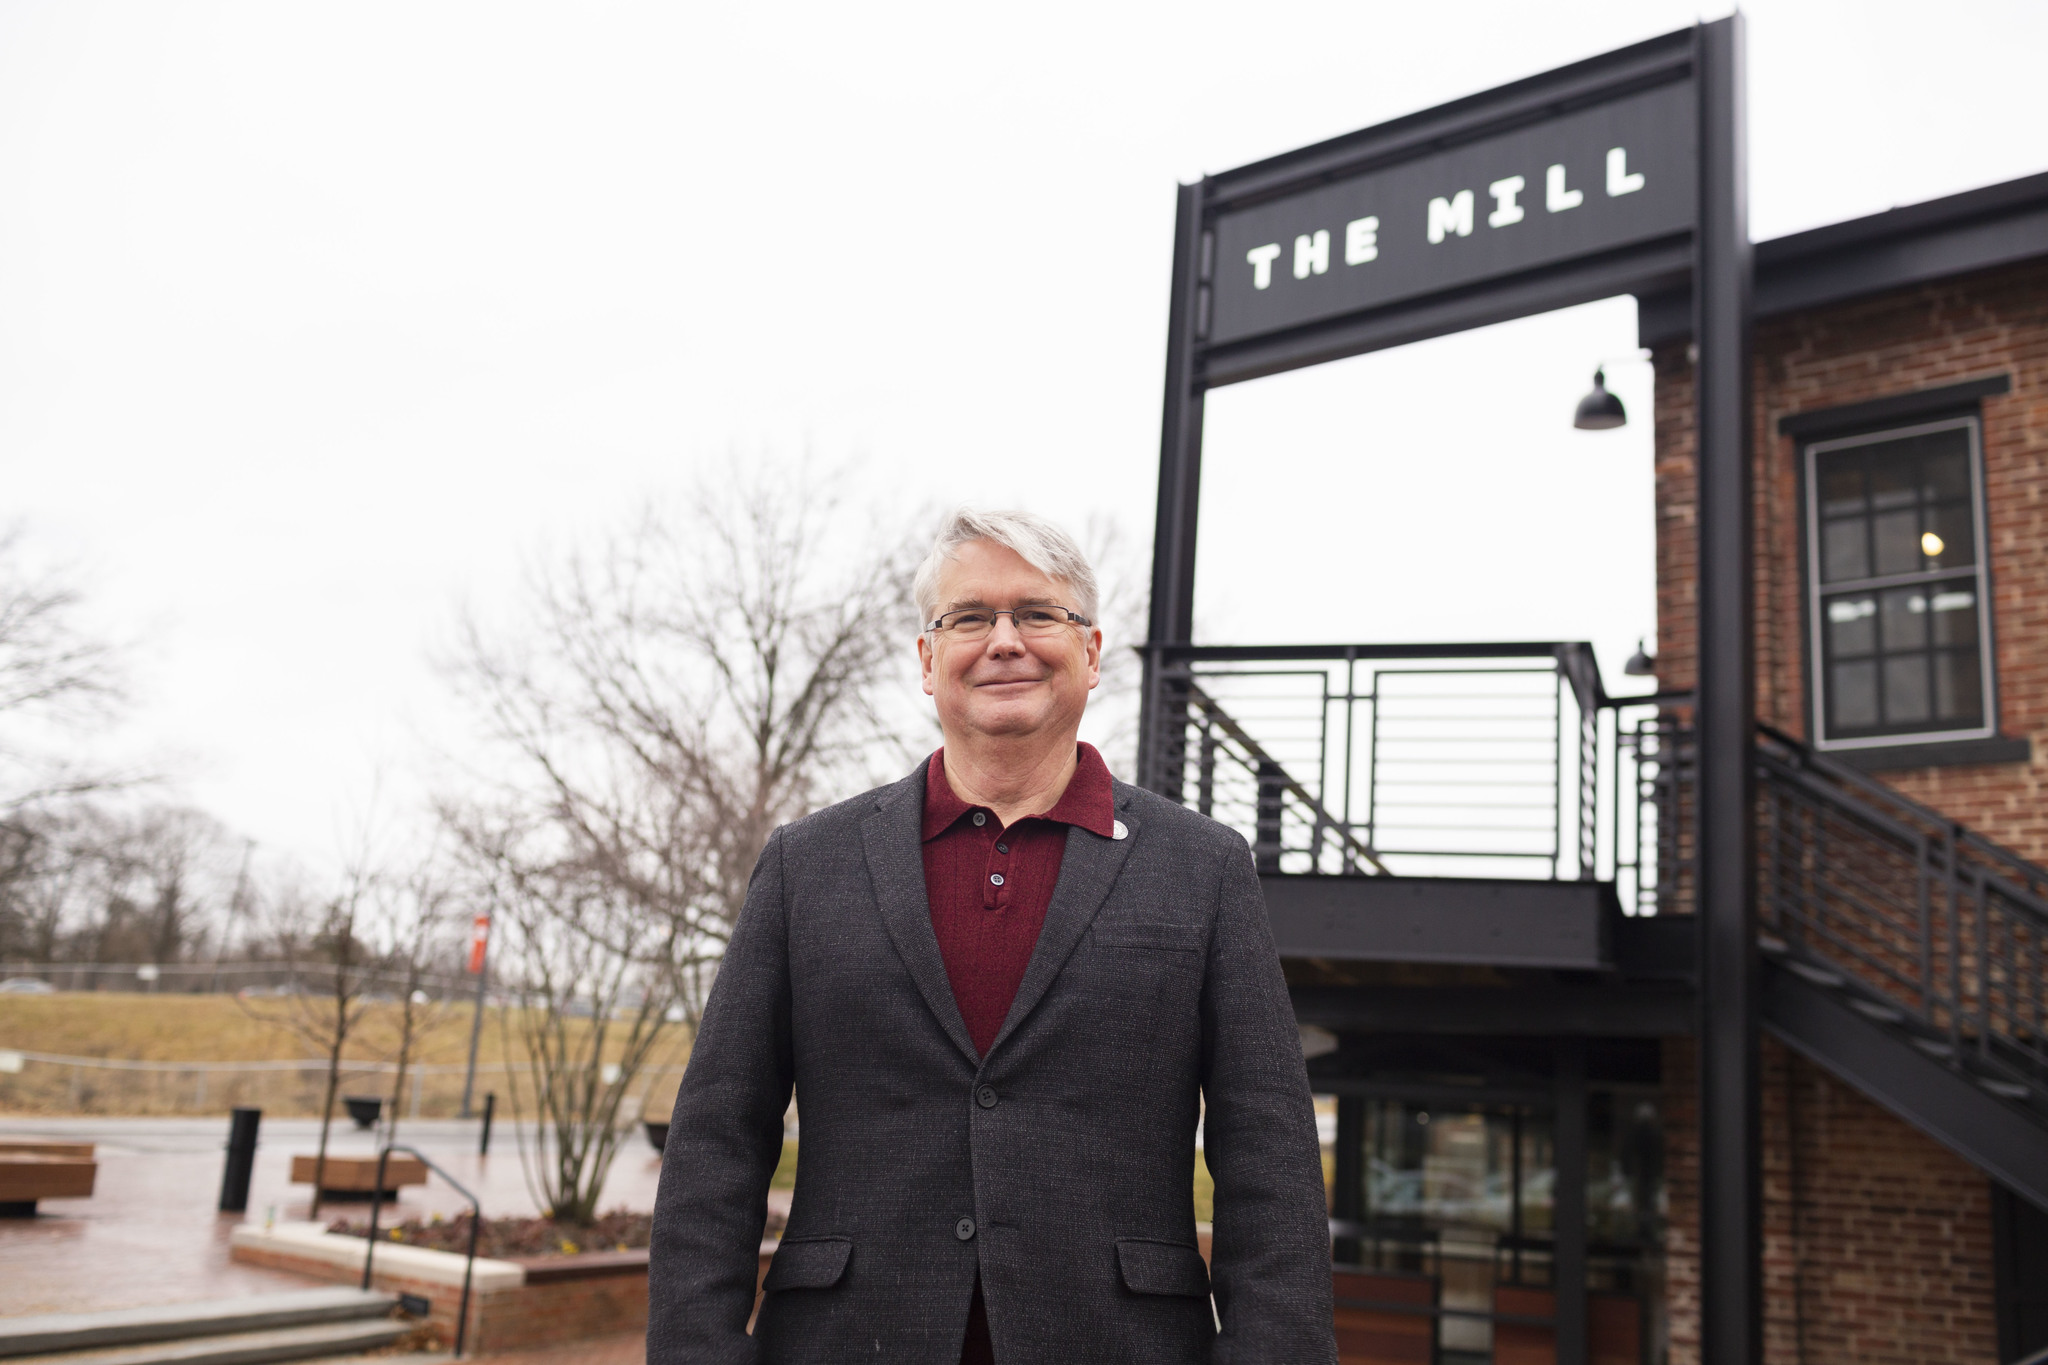 John in front of The Mill, which opened in 2018.